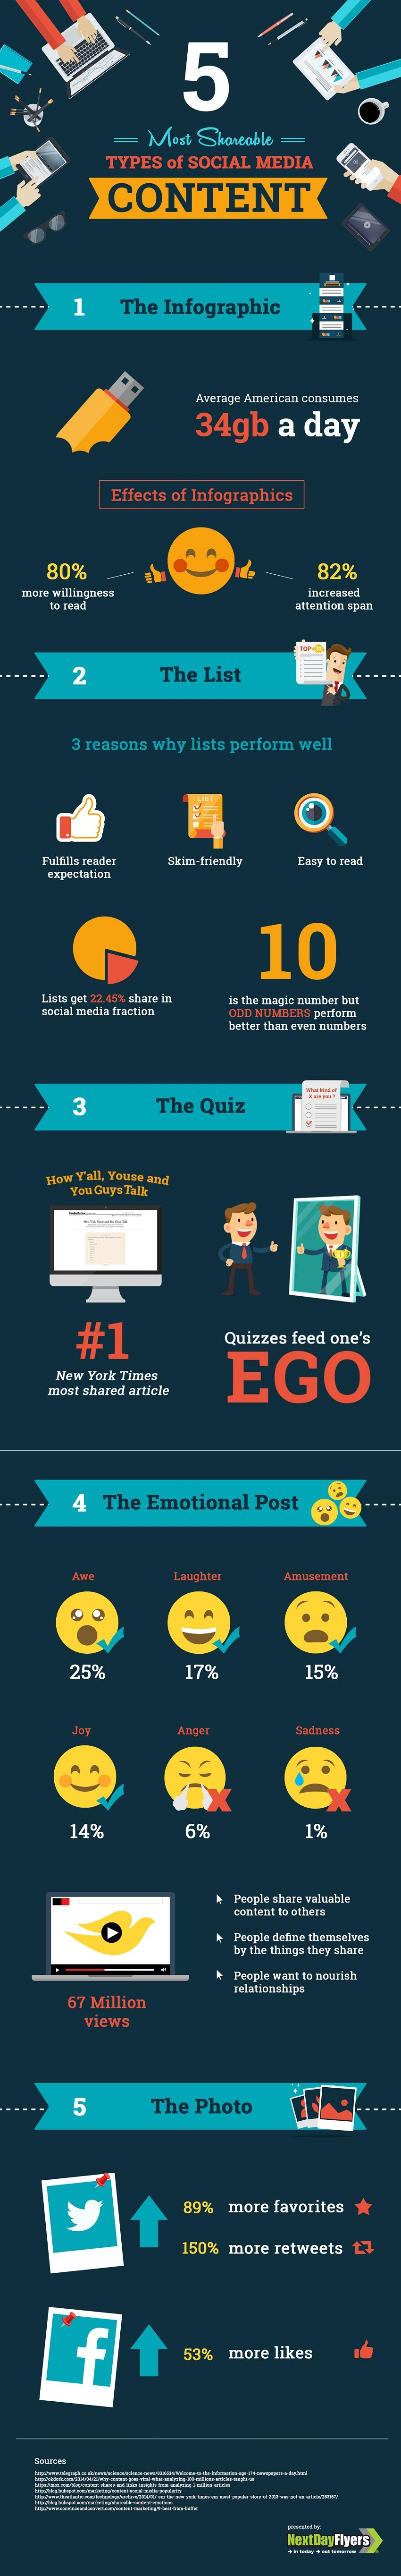 5 Most Shareable Social Media Content Types [INFOGRAPHIC]